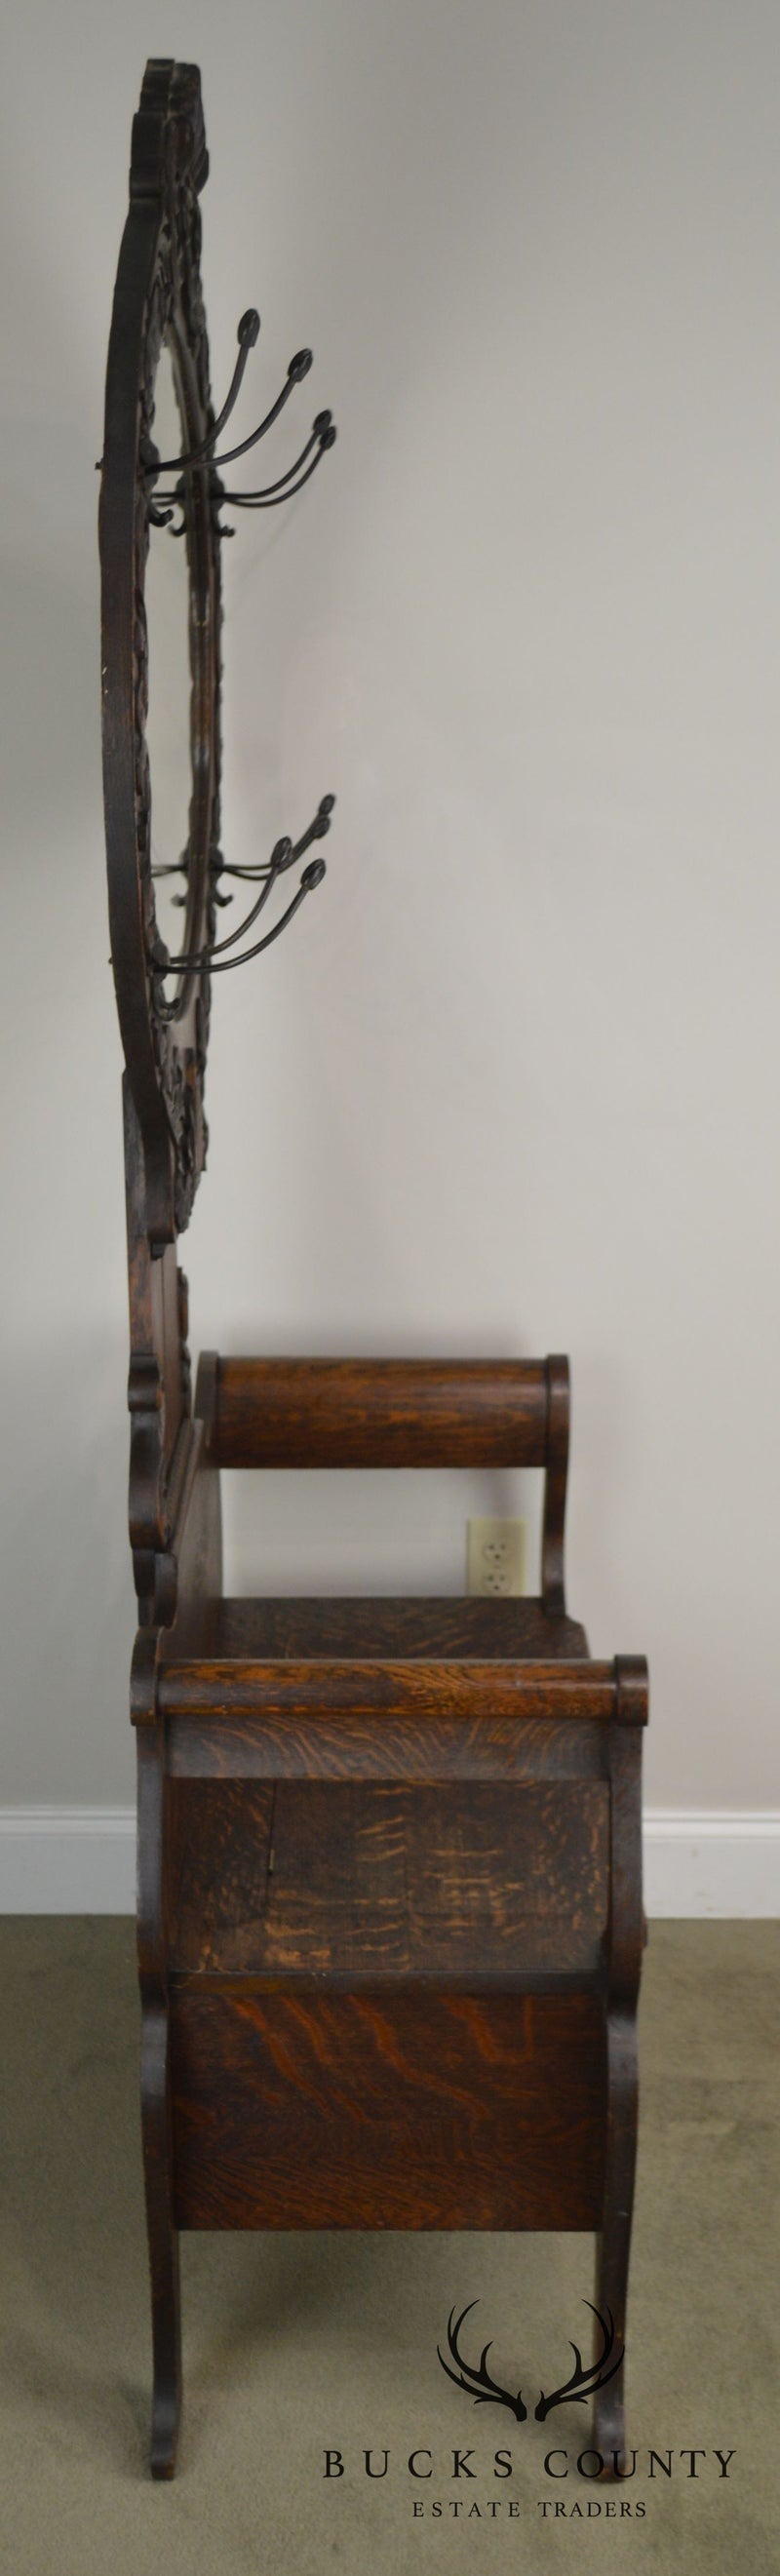 Antique Victorian Oak Hall Tree Mirror Back Bench